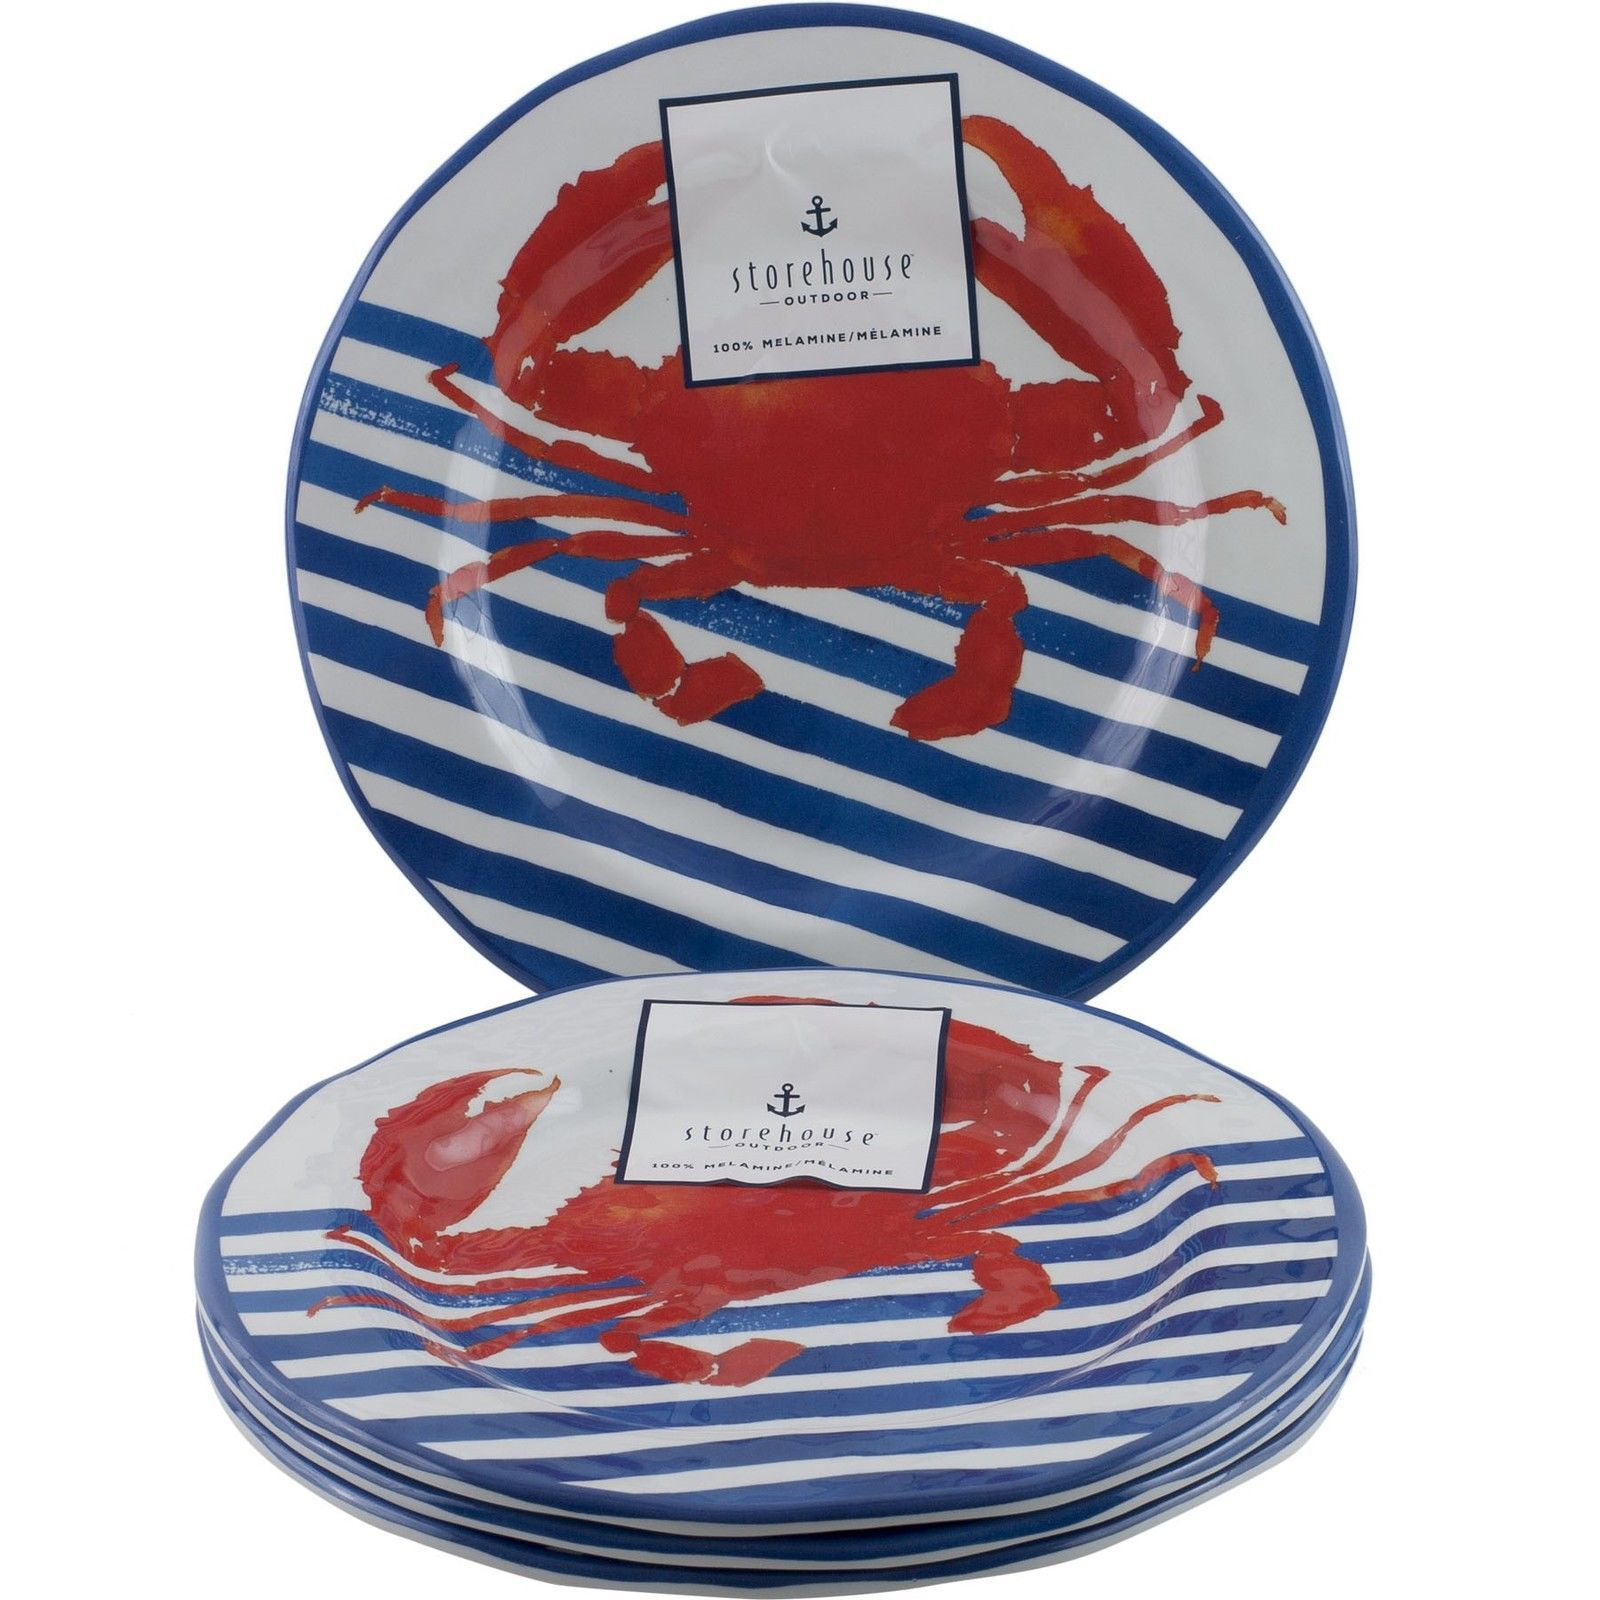 Plates 36030 Storehouse Outdoor Red Crab Salad Melamine Plates Set Of 4 Striped Nautical -  sc 1 st  Pinterest & Plates 36030: Storehouse Outdoor Red Crab Salad Melamine Plates ...